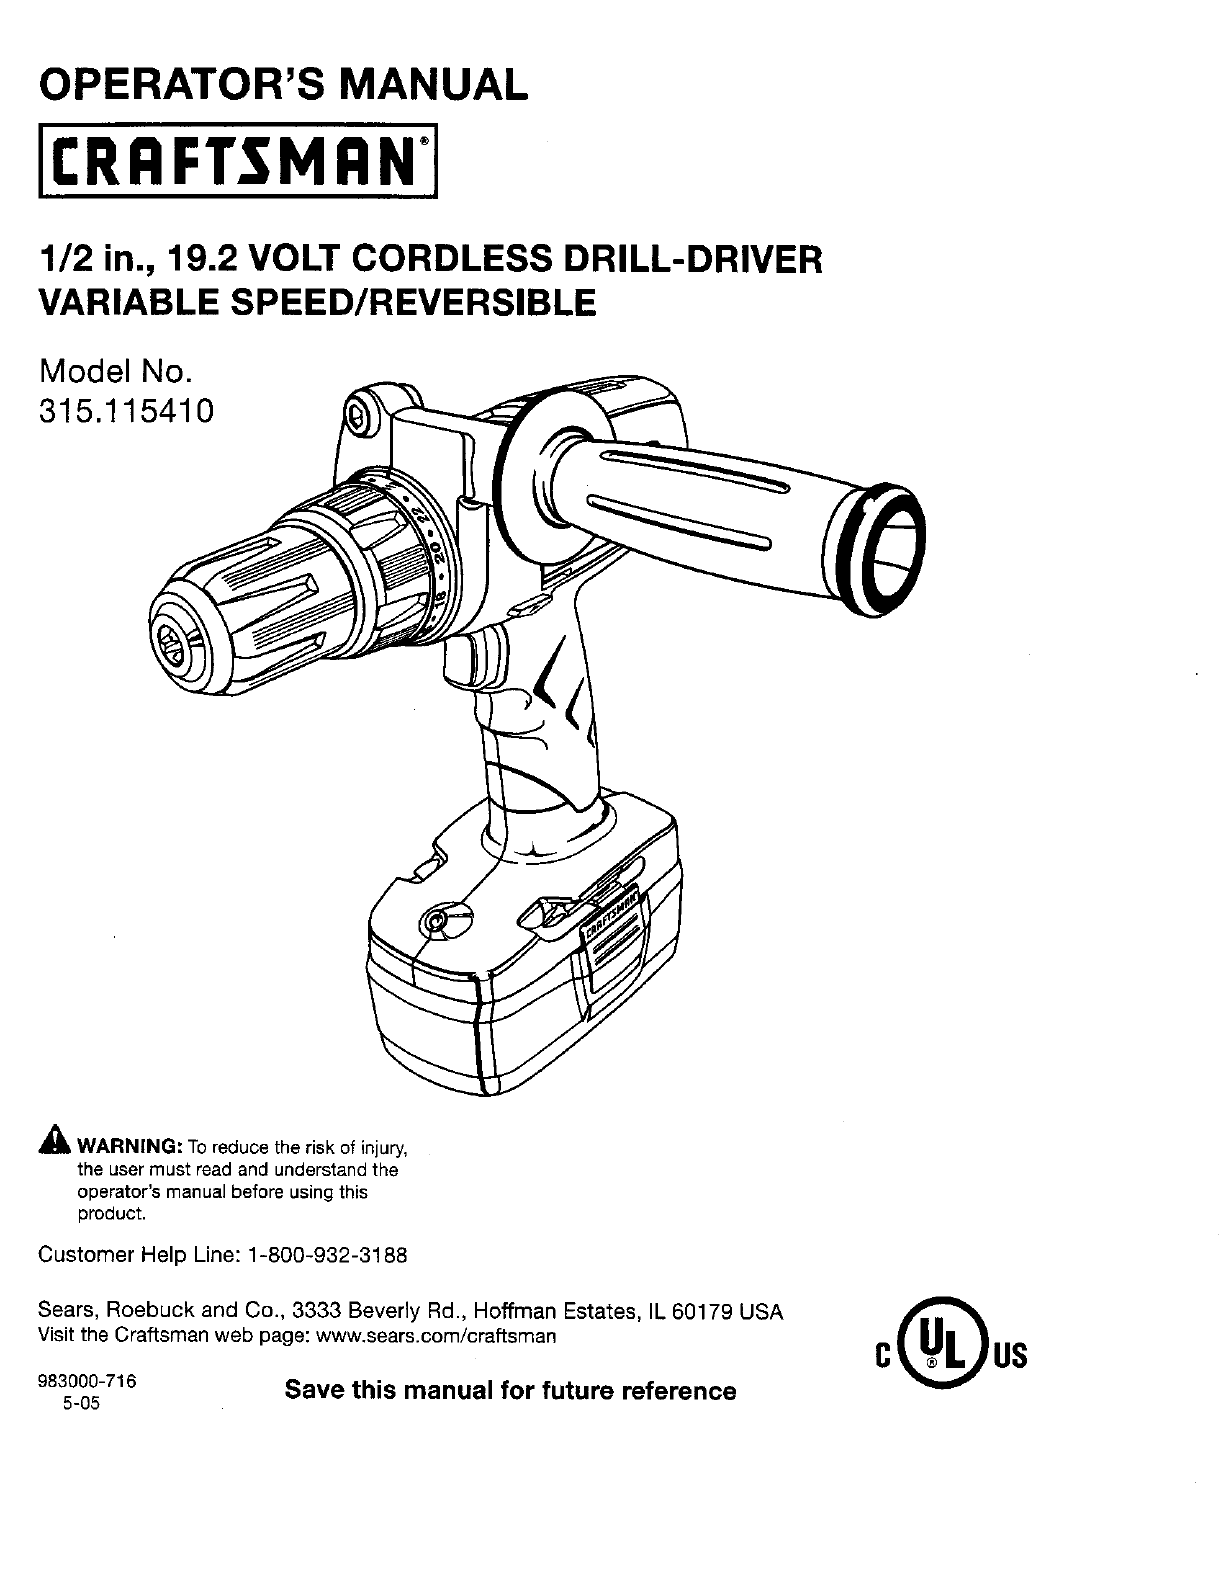 Craftsman 315115410 User Manual DRILL Manuals And Guides